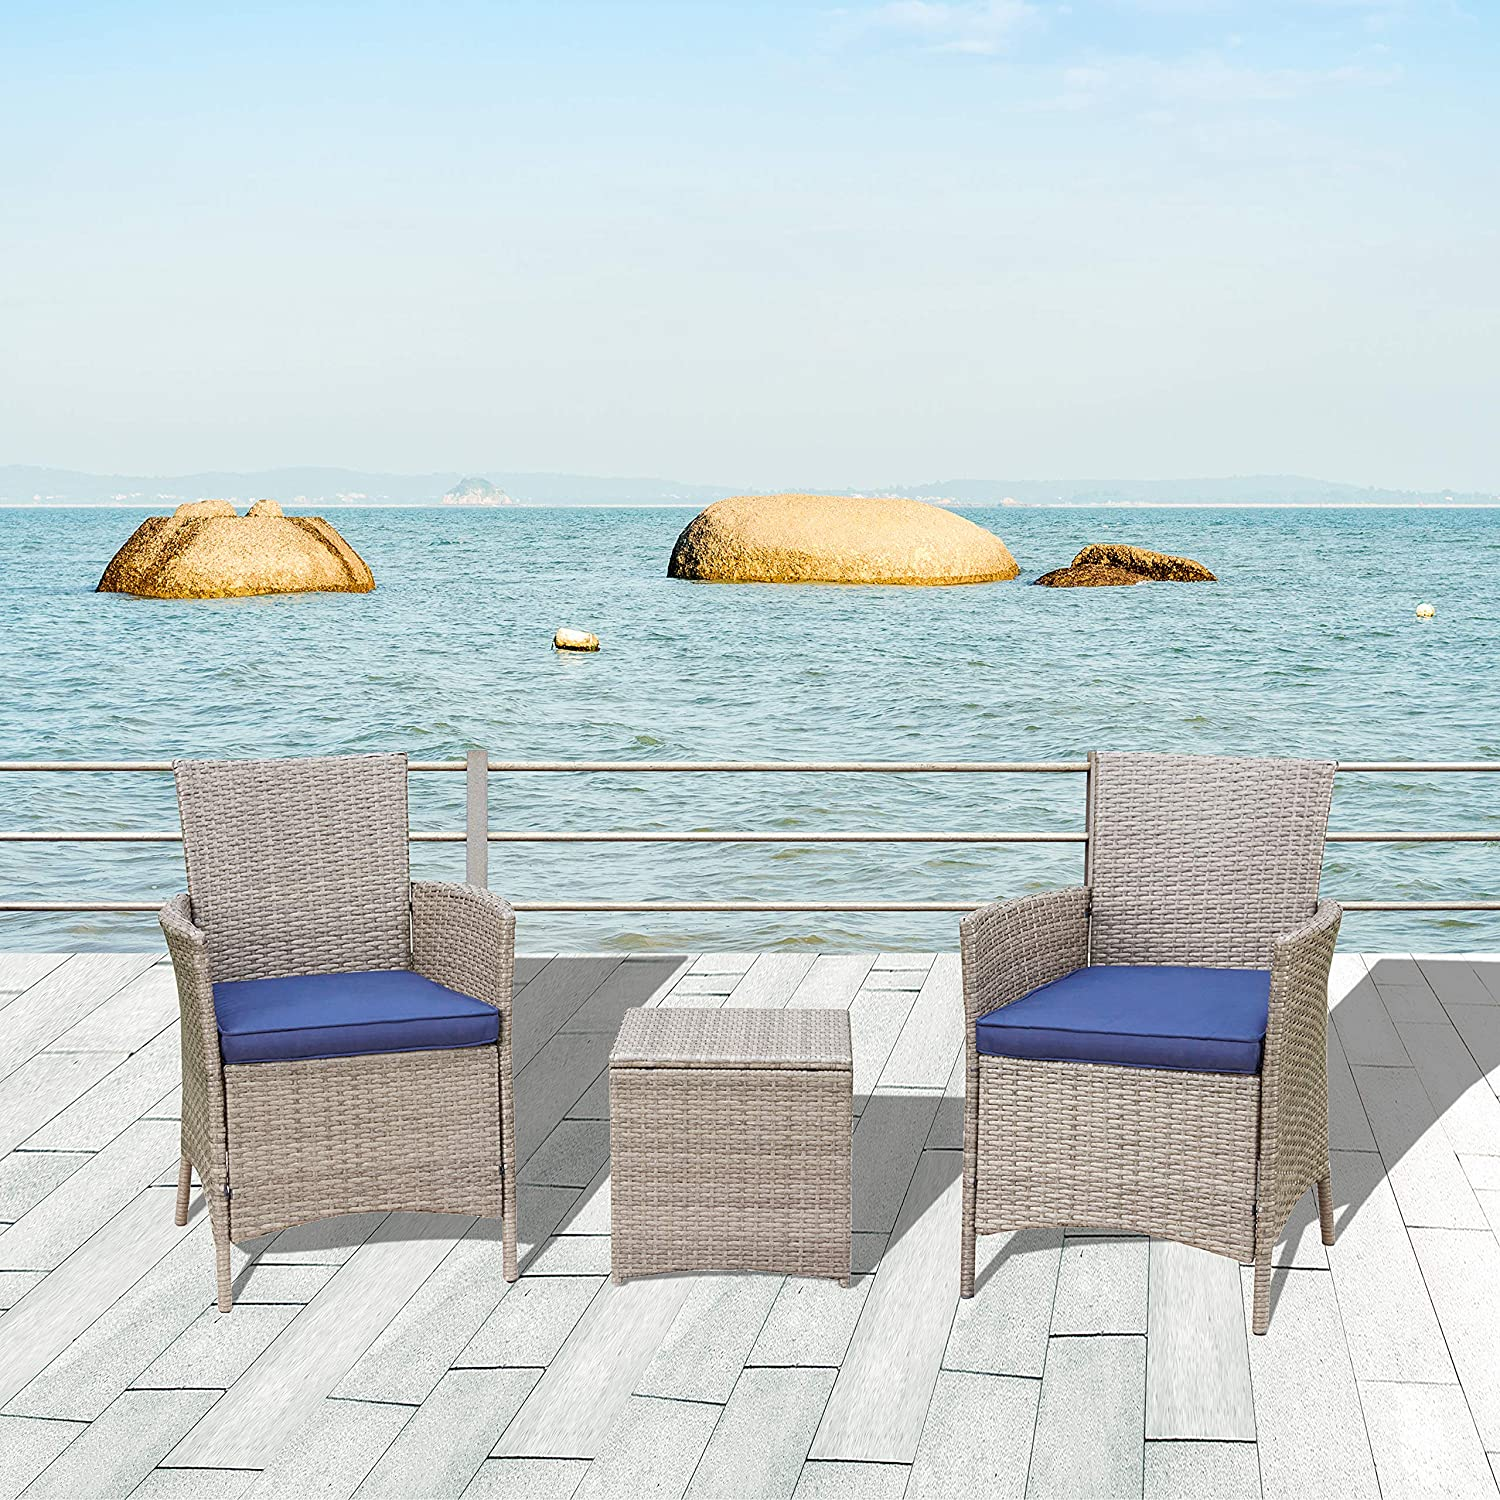 LOKATSE HOME 3 Pieces Patio Furniture Outdoor Wicker Conversation Bistro Chairs Set with Rattan Coffee Table, Blue Cushion